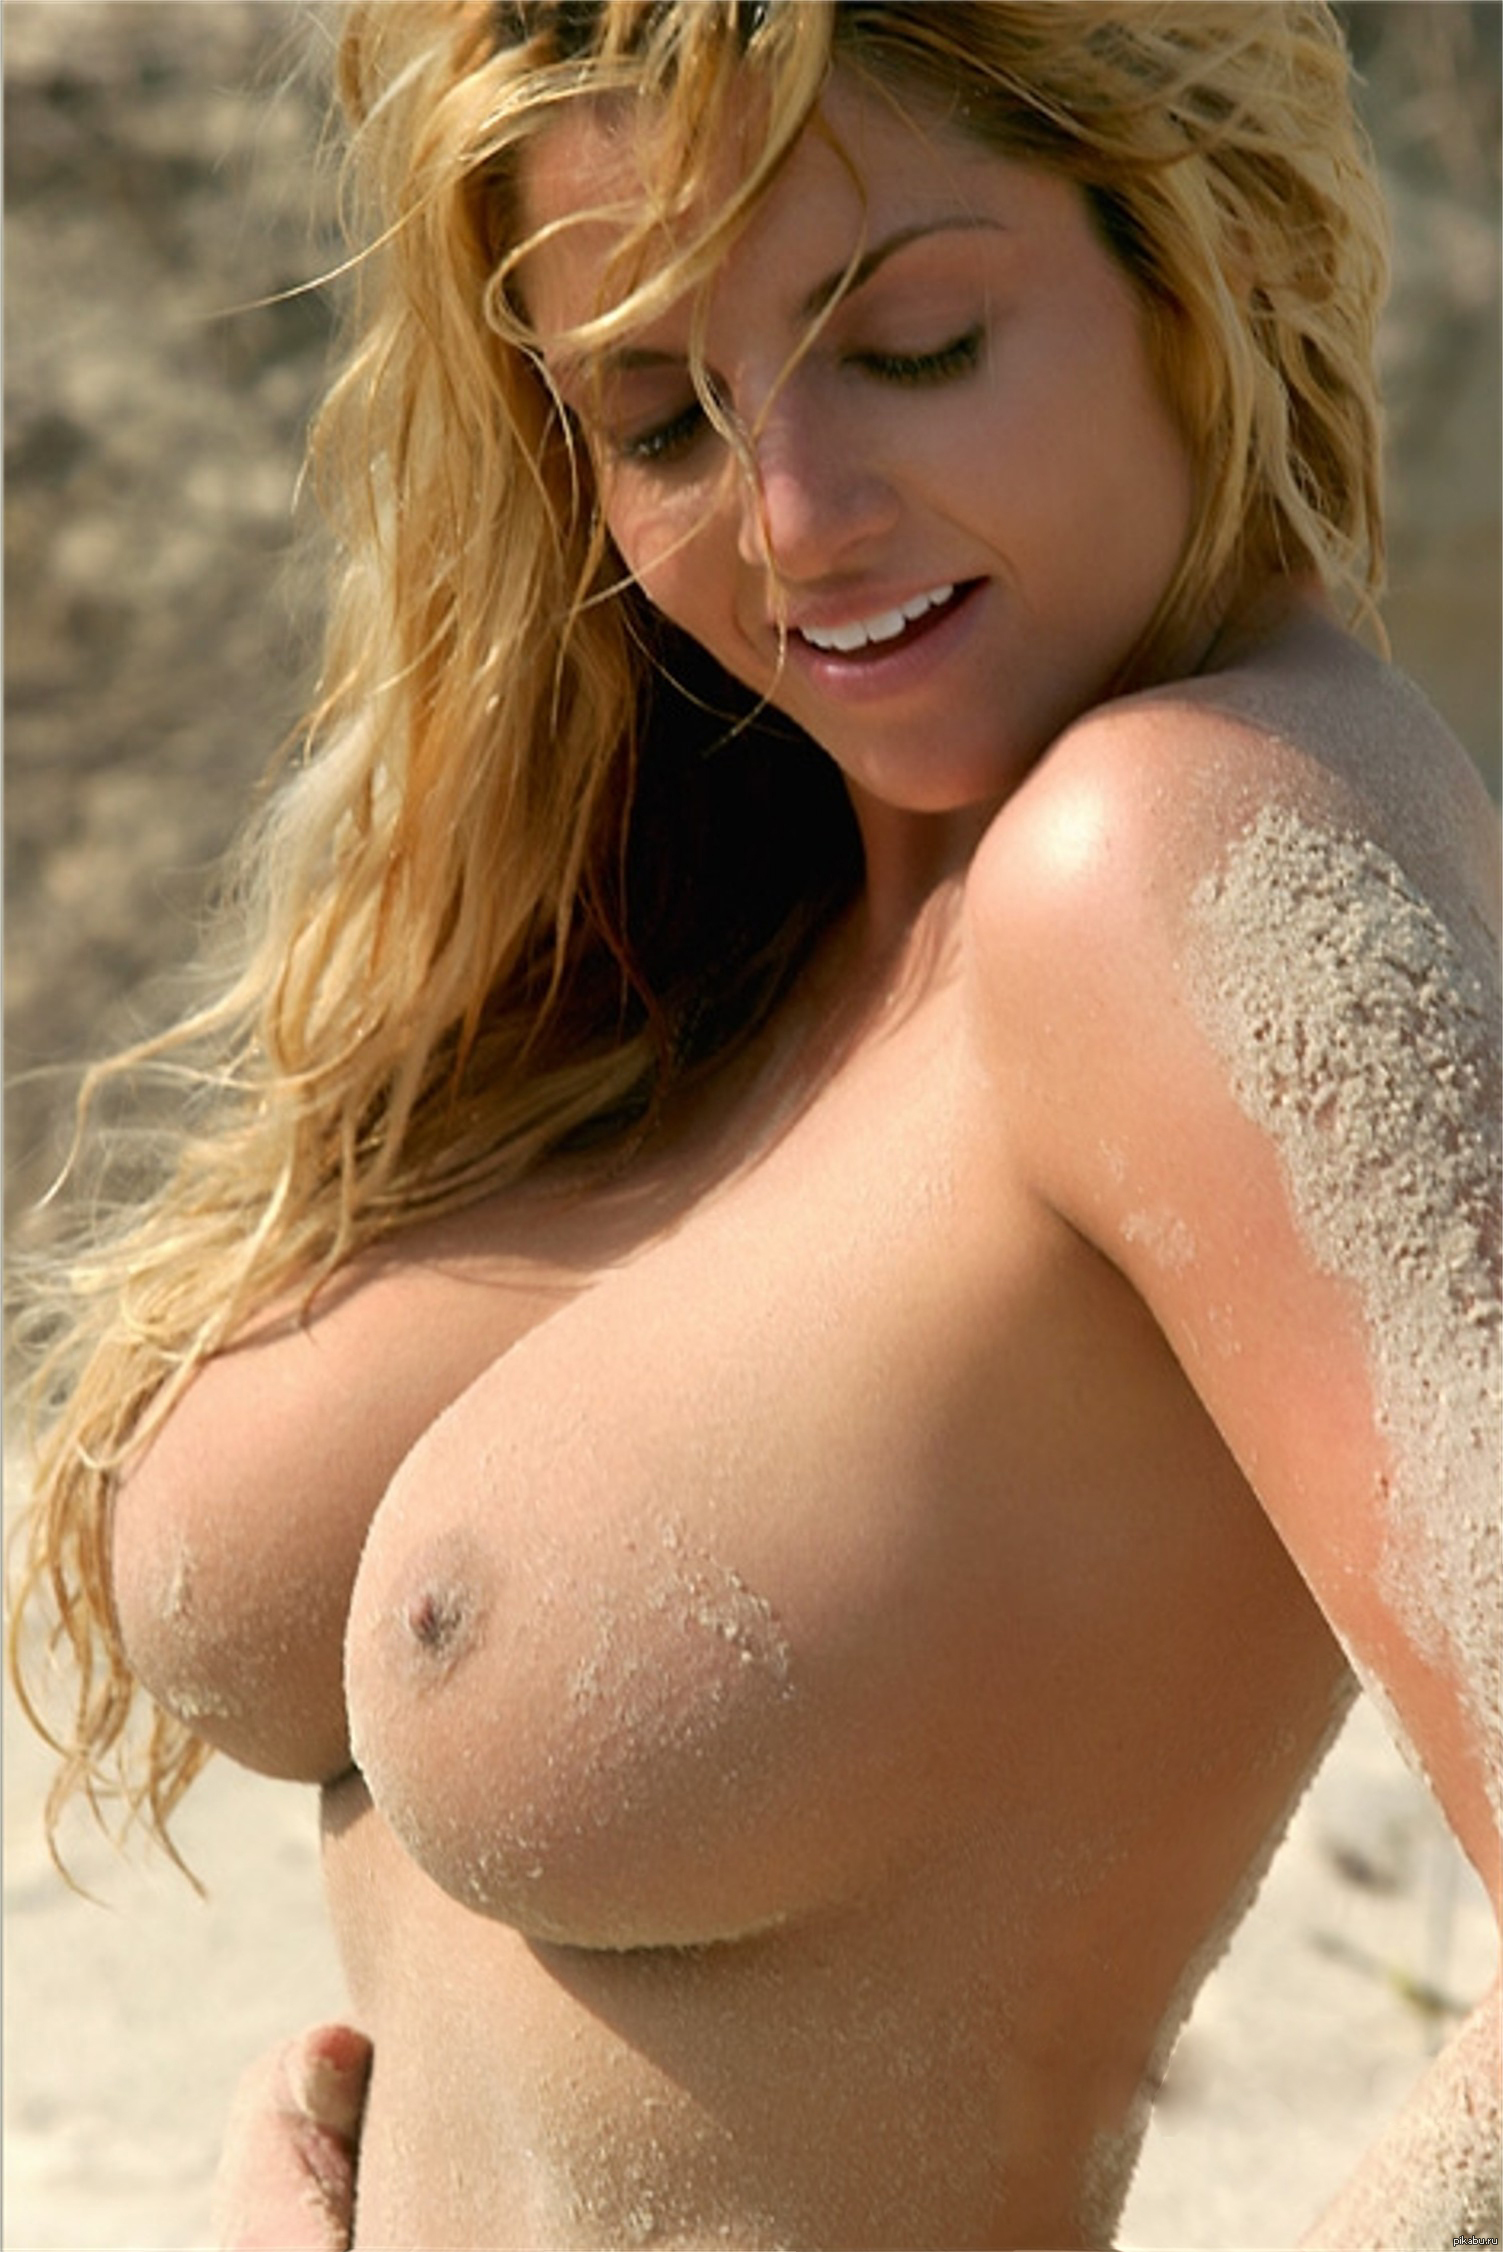 Hotties boobs